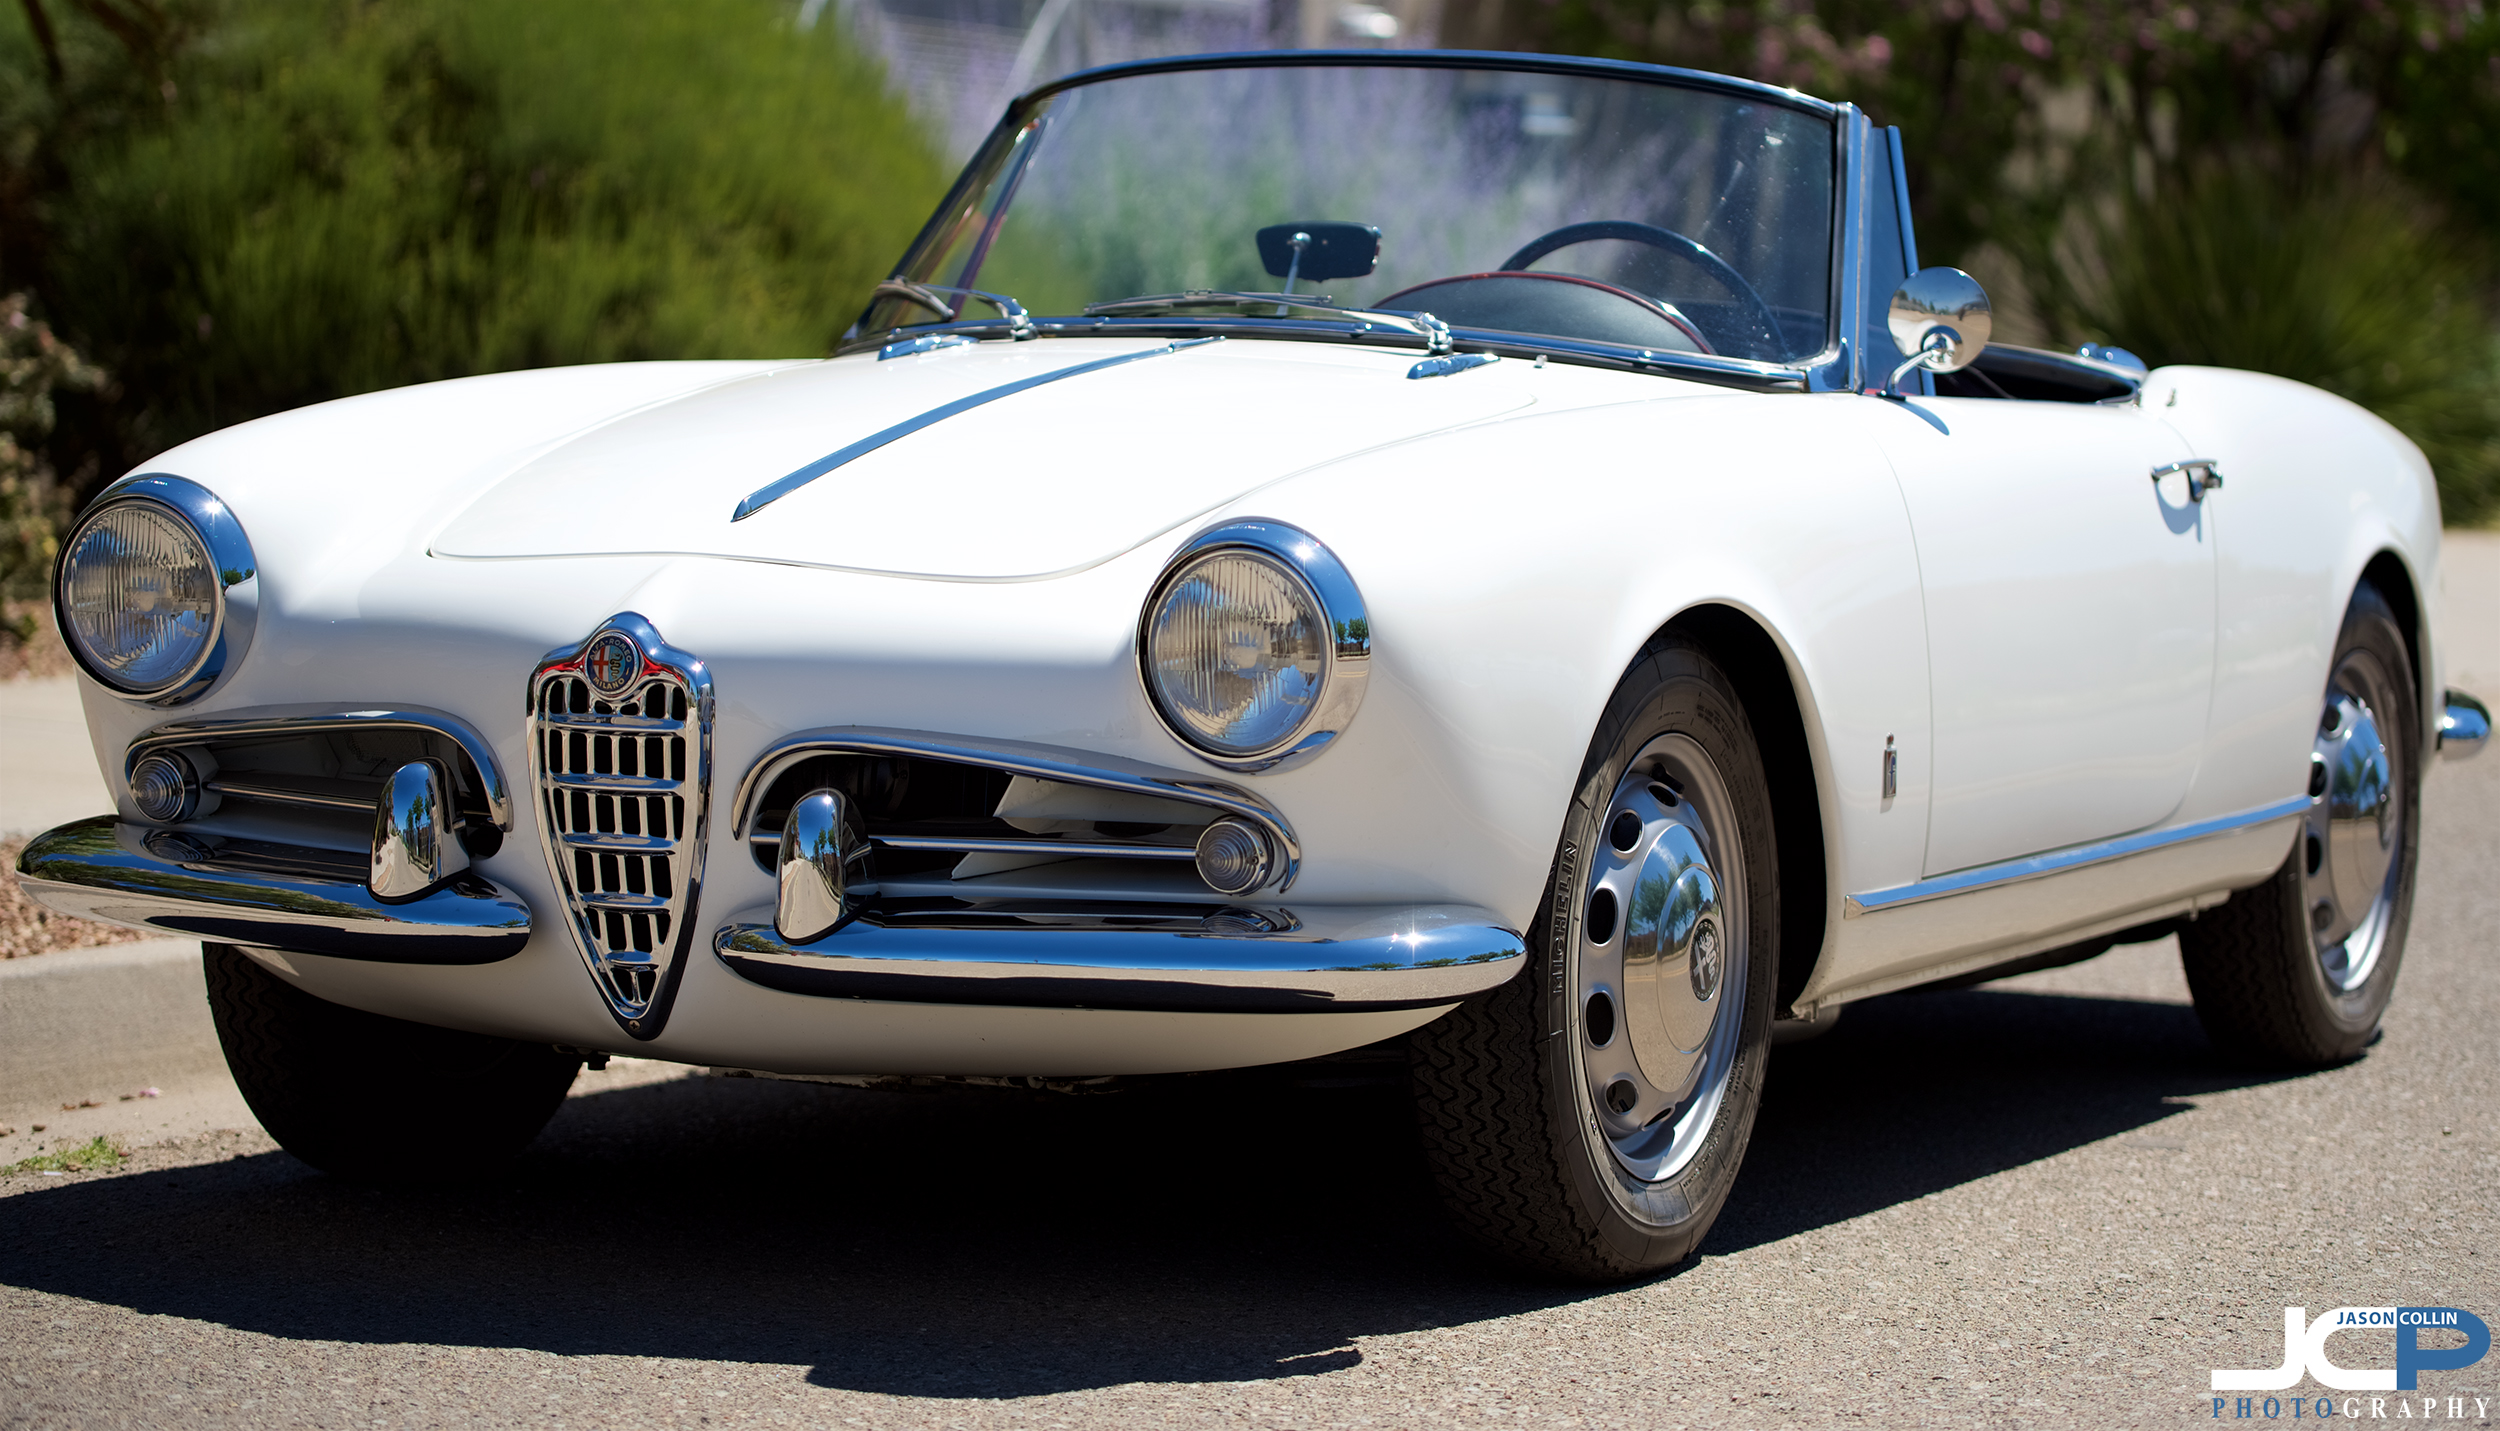 This beautiful Alfa Romeo could be yours from Bonhams Auction House during Monterey Car Week 2019